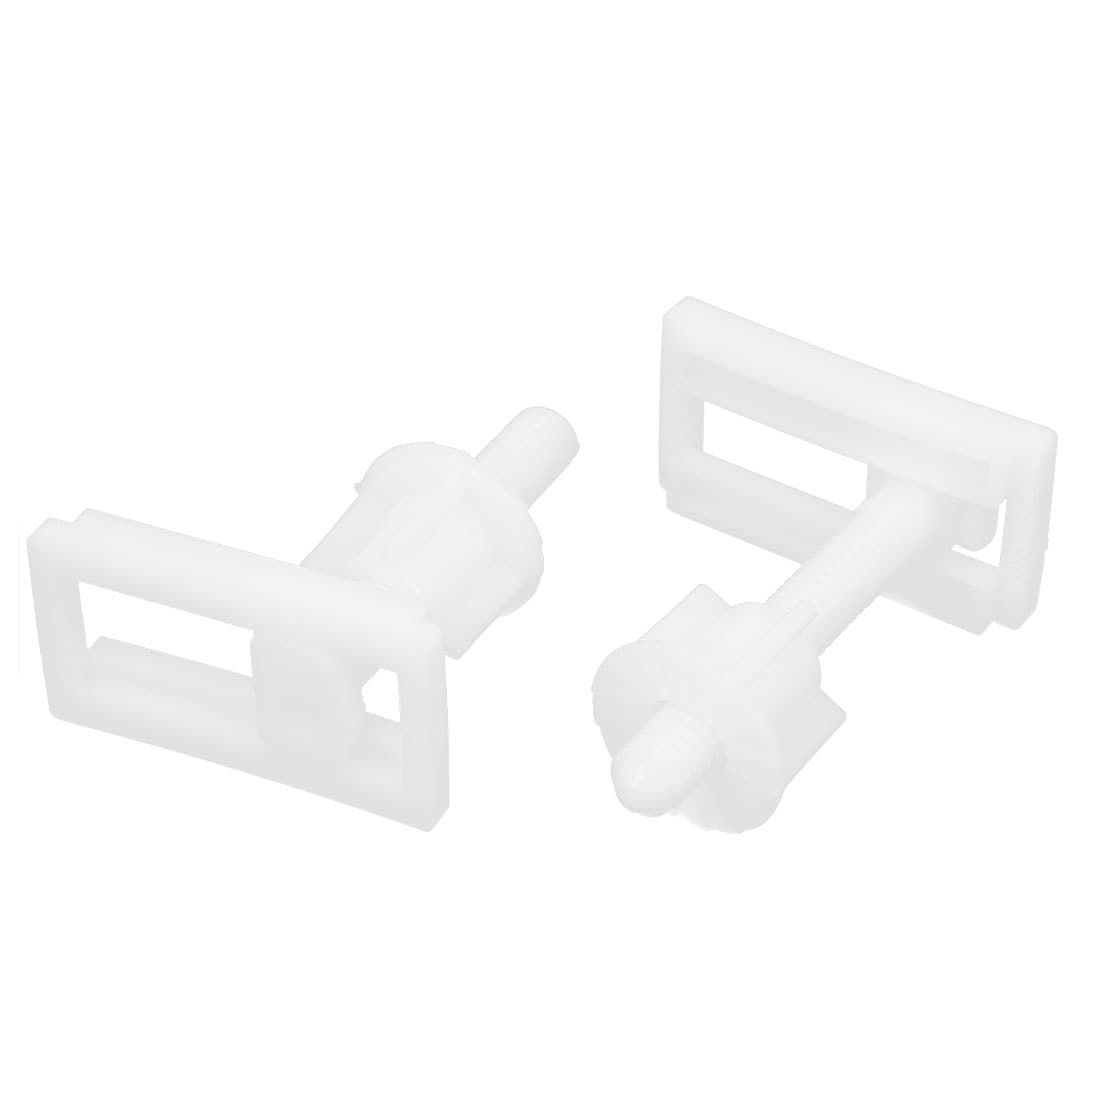 Fine Rectangular Shaped Toilet Seat Hinge Bolts Nuts Repair Tool Gamerscity Chair Design For Home Gamerscityorg